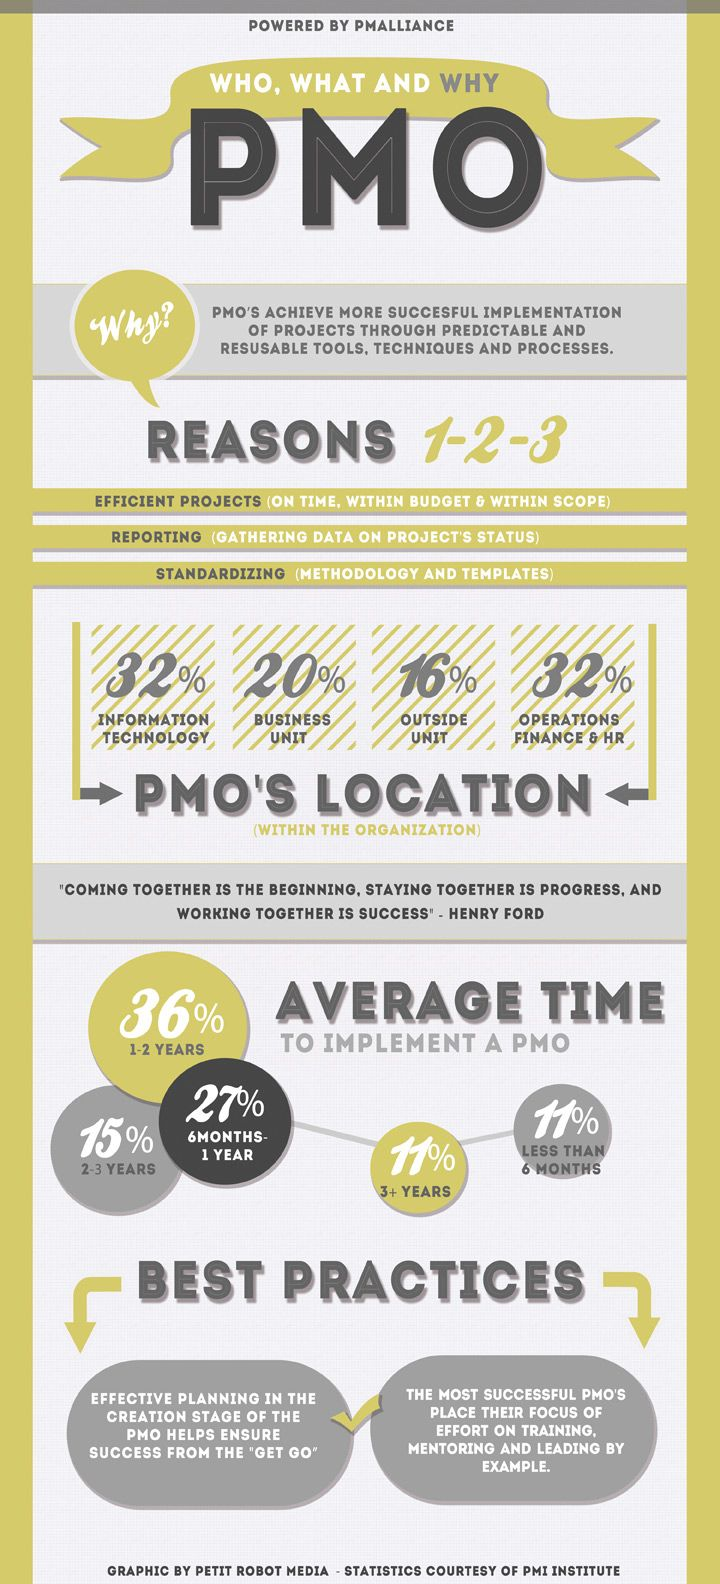 "Cool #projectmanagement #Infographic, for www.pm-alliance.com ""All about PMO's"" It explains why you should have one, what it takes to get a #PMO up and running and the best practices you should know about! By www.petitrobot.com"